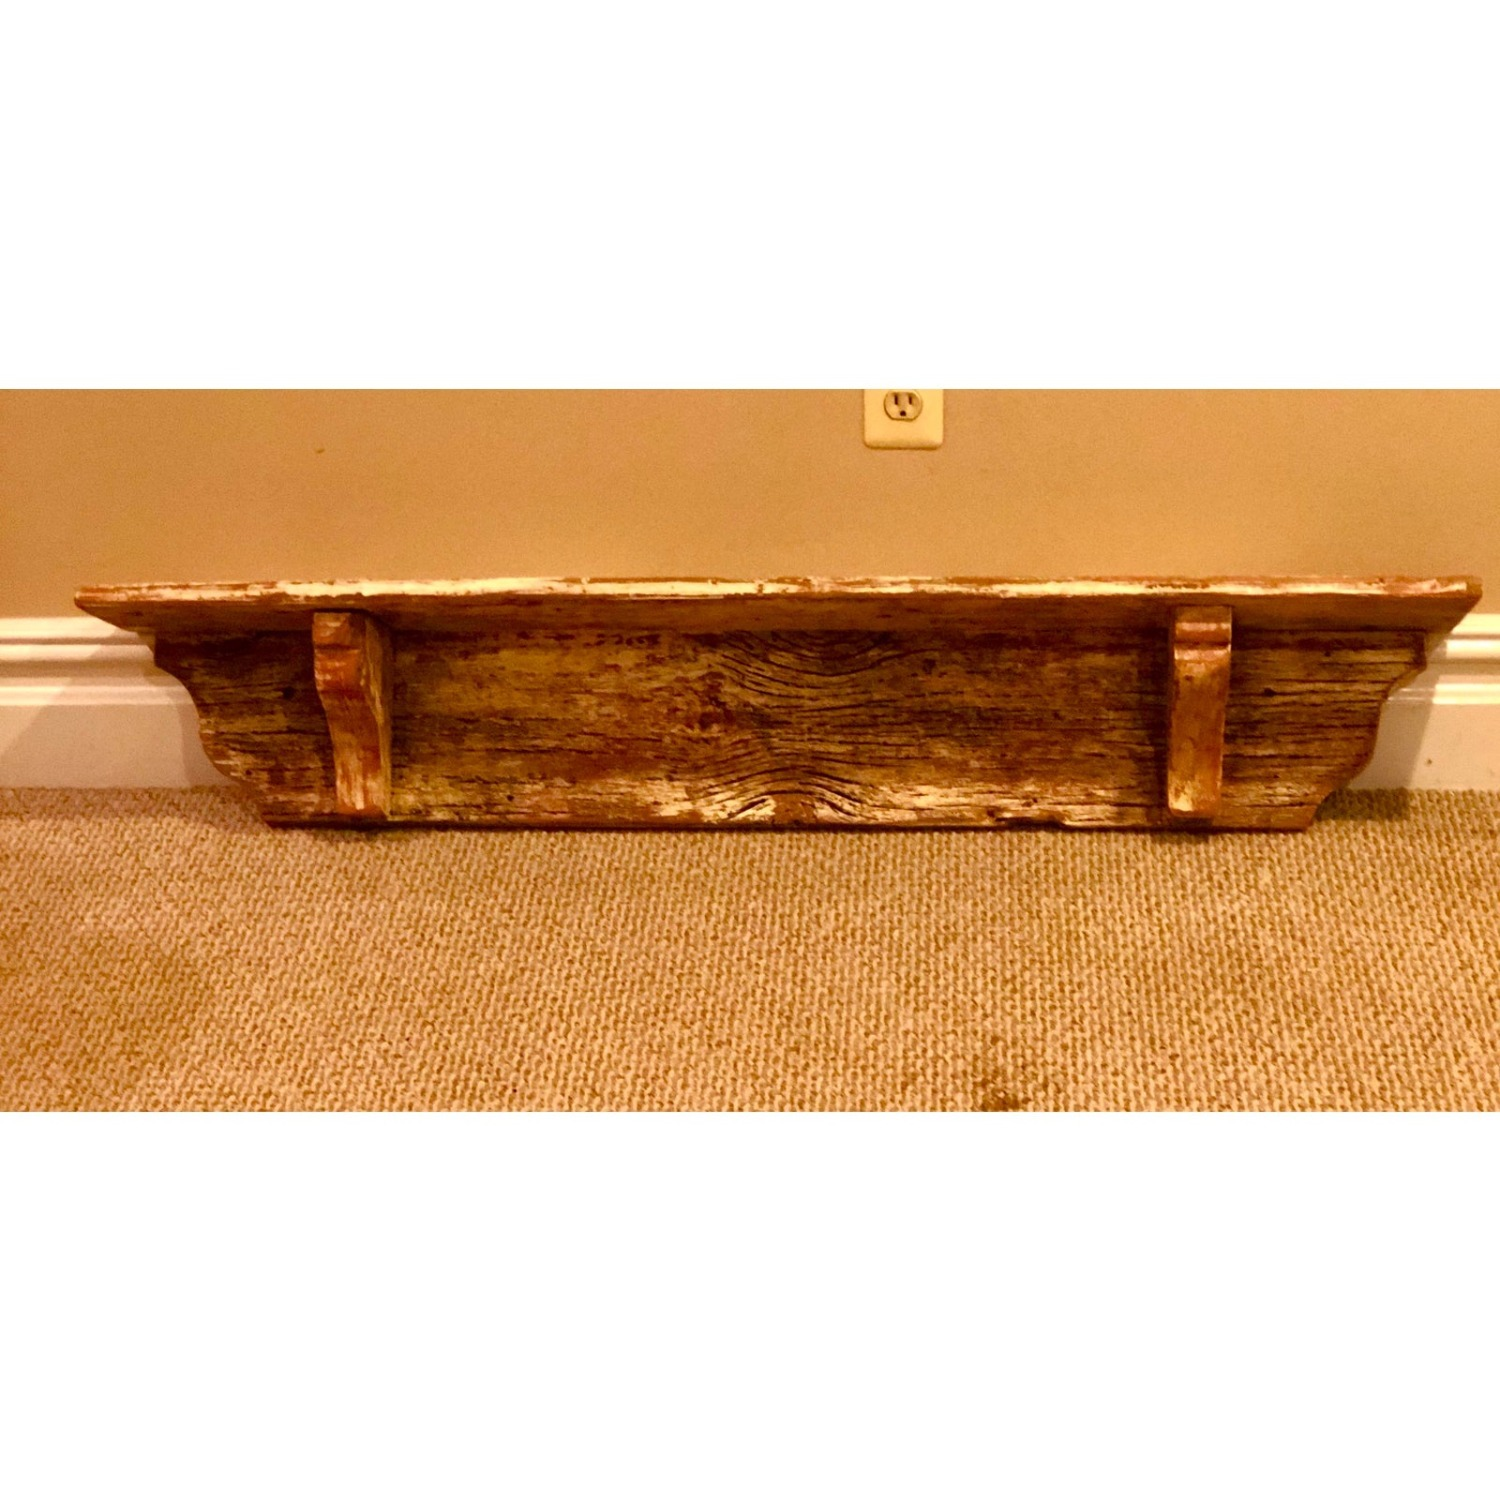 Vintage Rustic Extra Long Shelf or Mantel - image-3